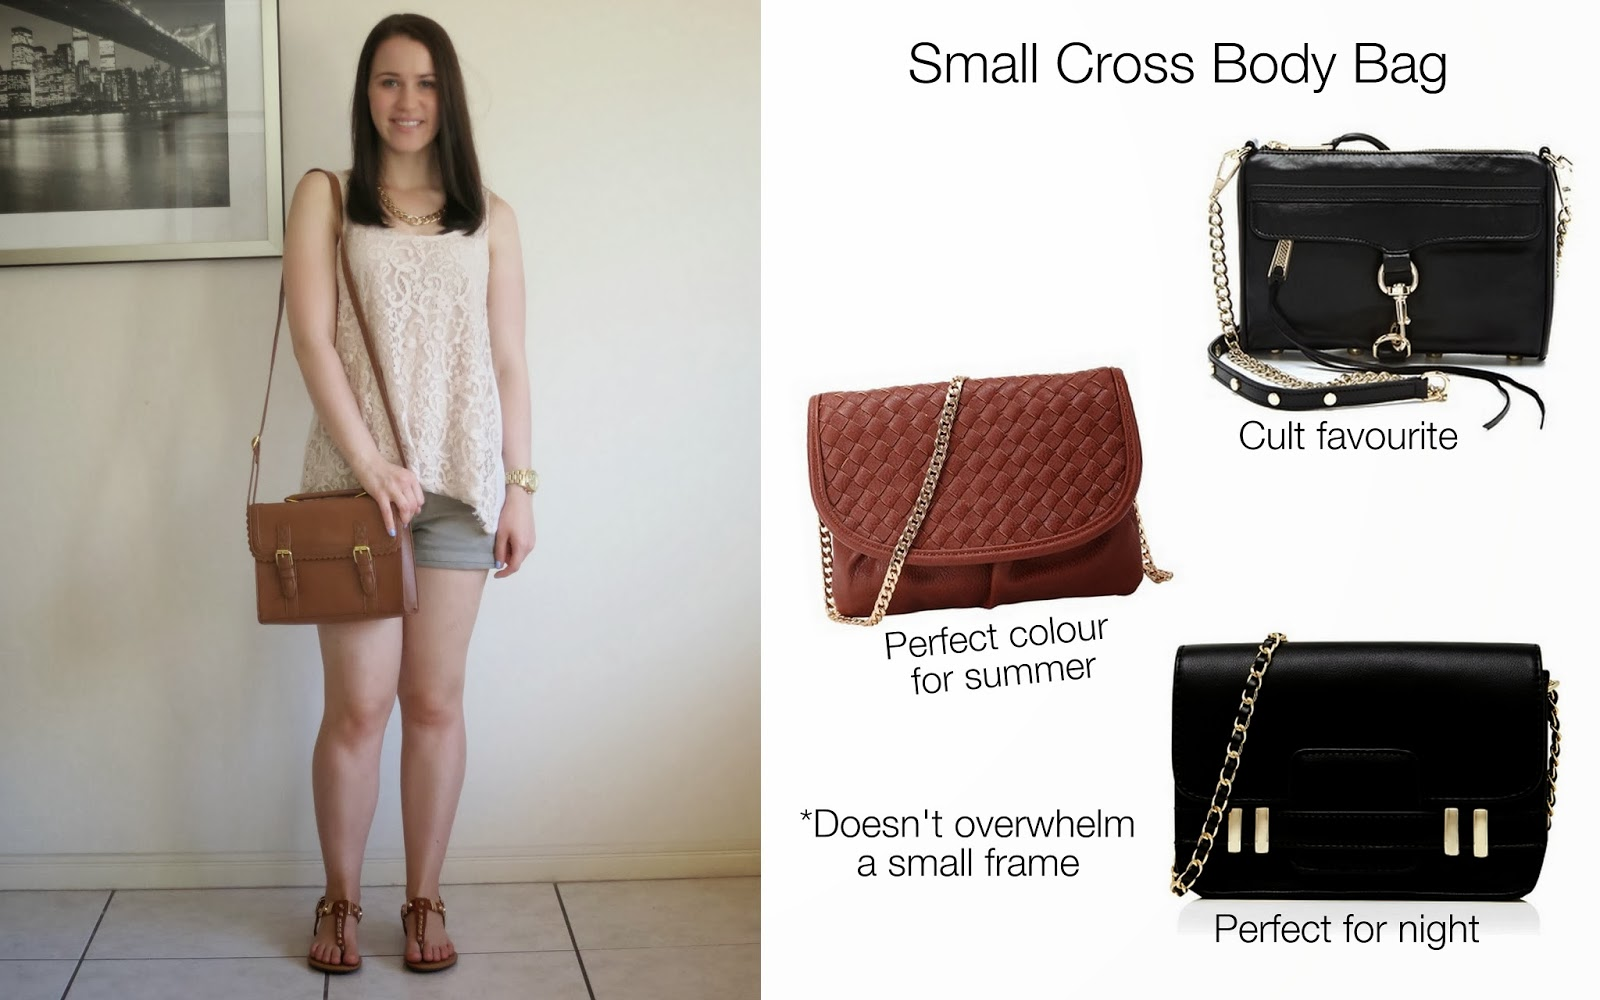 petite outfit, college outfit, university outfit, cross body bags, best petite clothing items